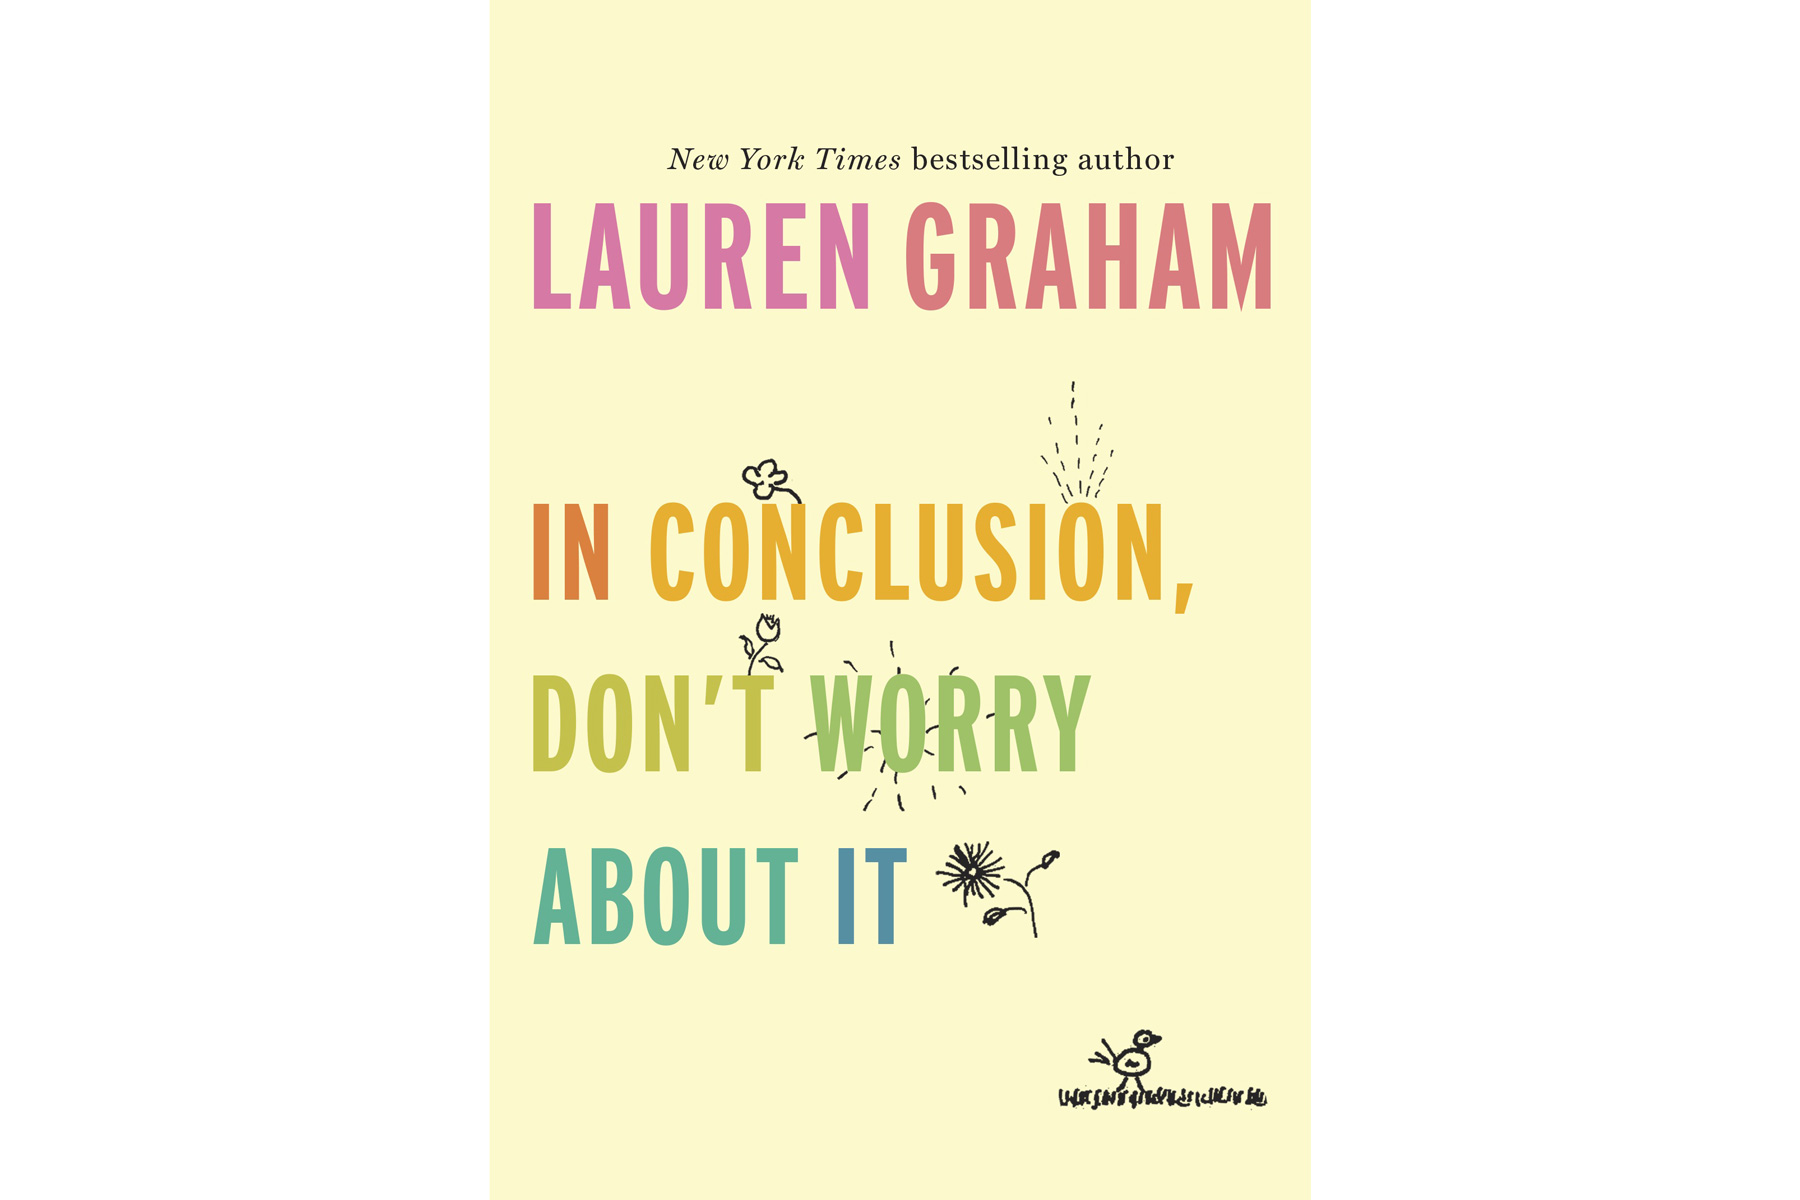 In Conclusion, Don't Worry About It, by Lauren Graham